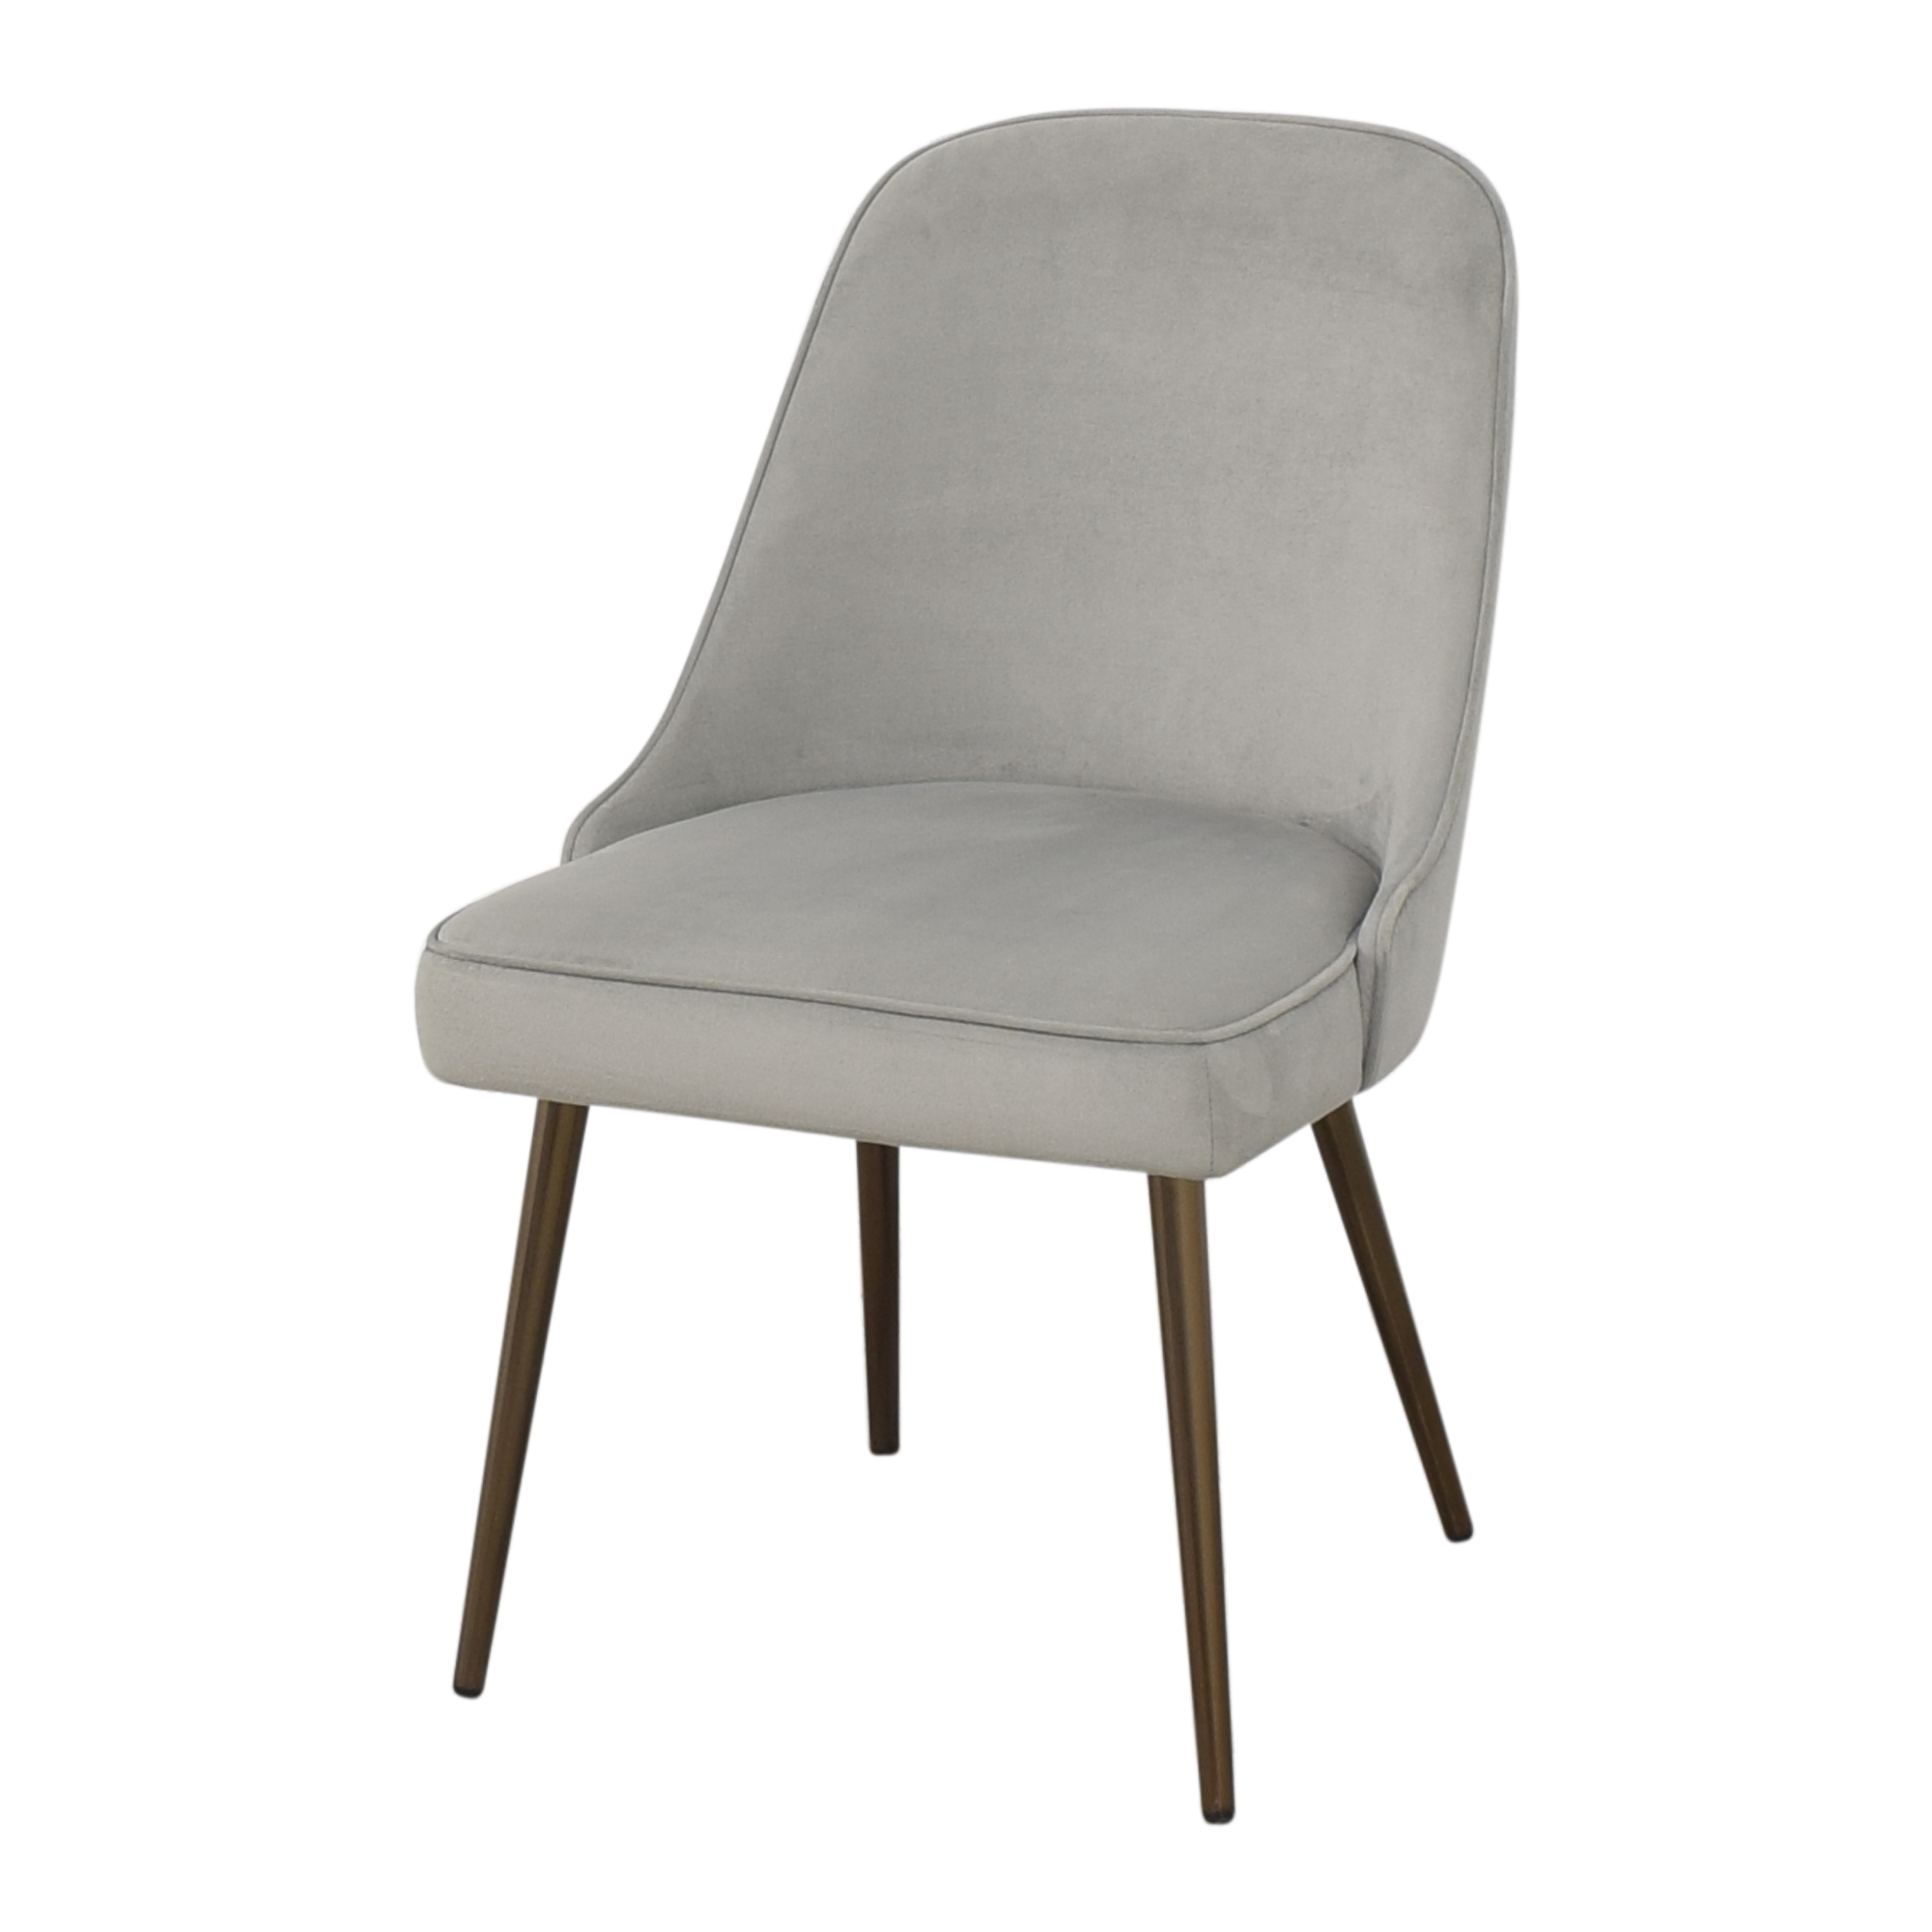 West Elm West Elm Mid Century Upholstered Dining Chair for sale